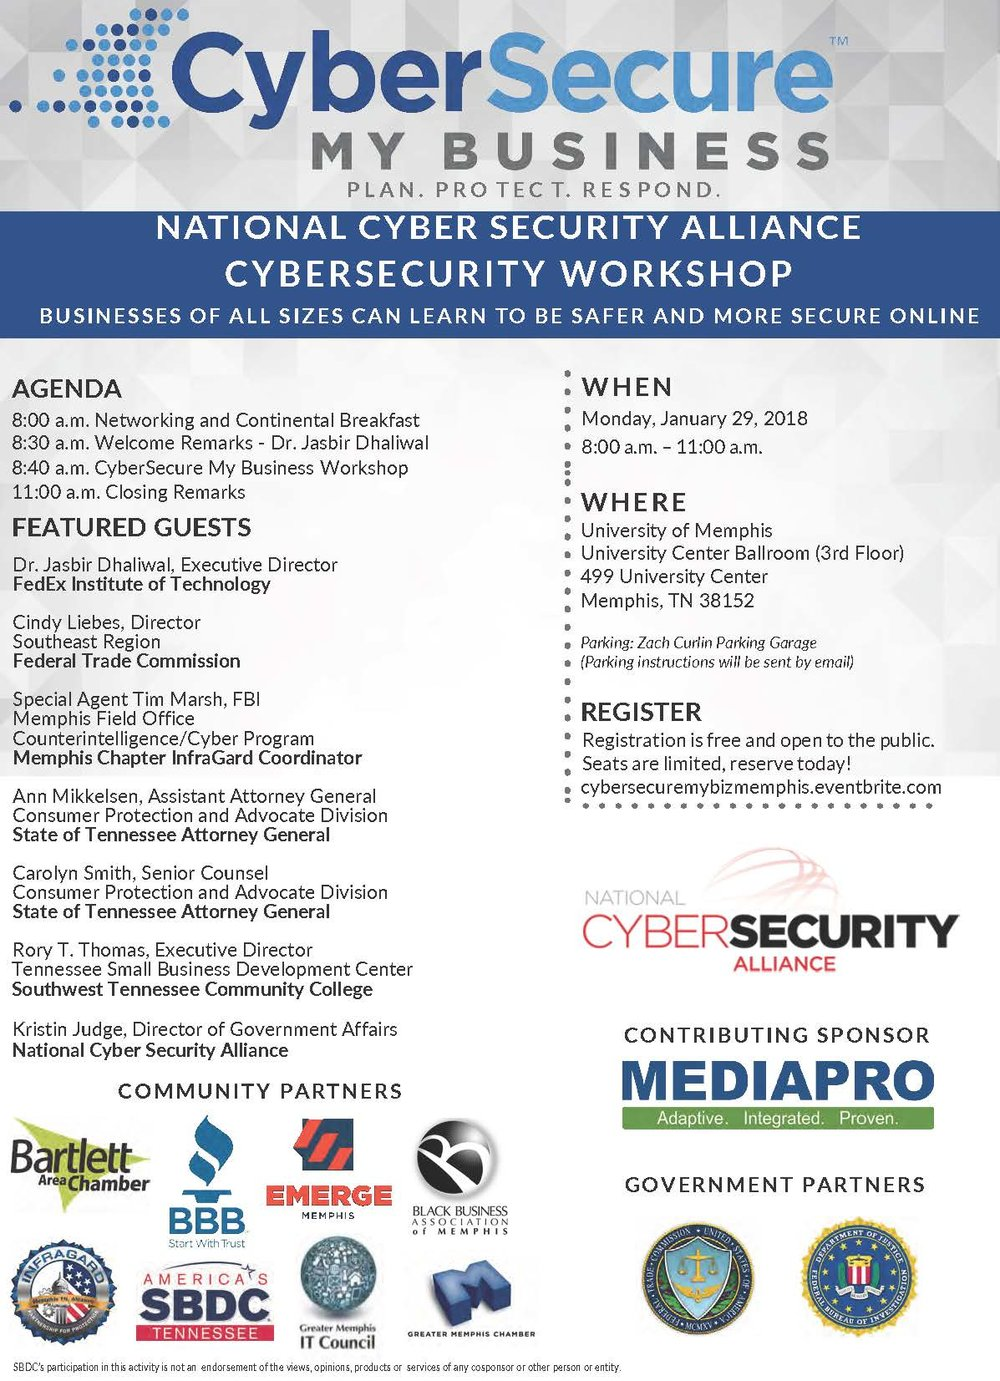 NCSA CyberSecure My Business Workshop INVITATION Final - Memphis (image).jpg